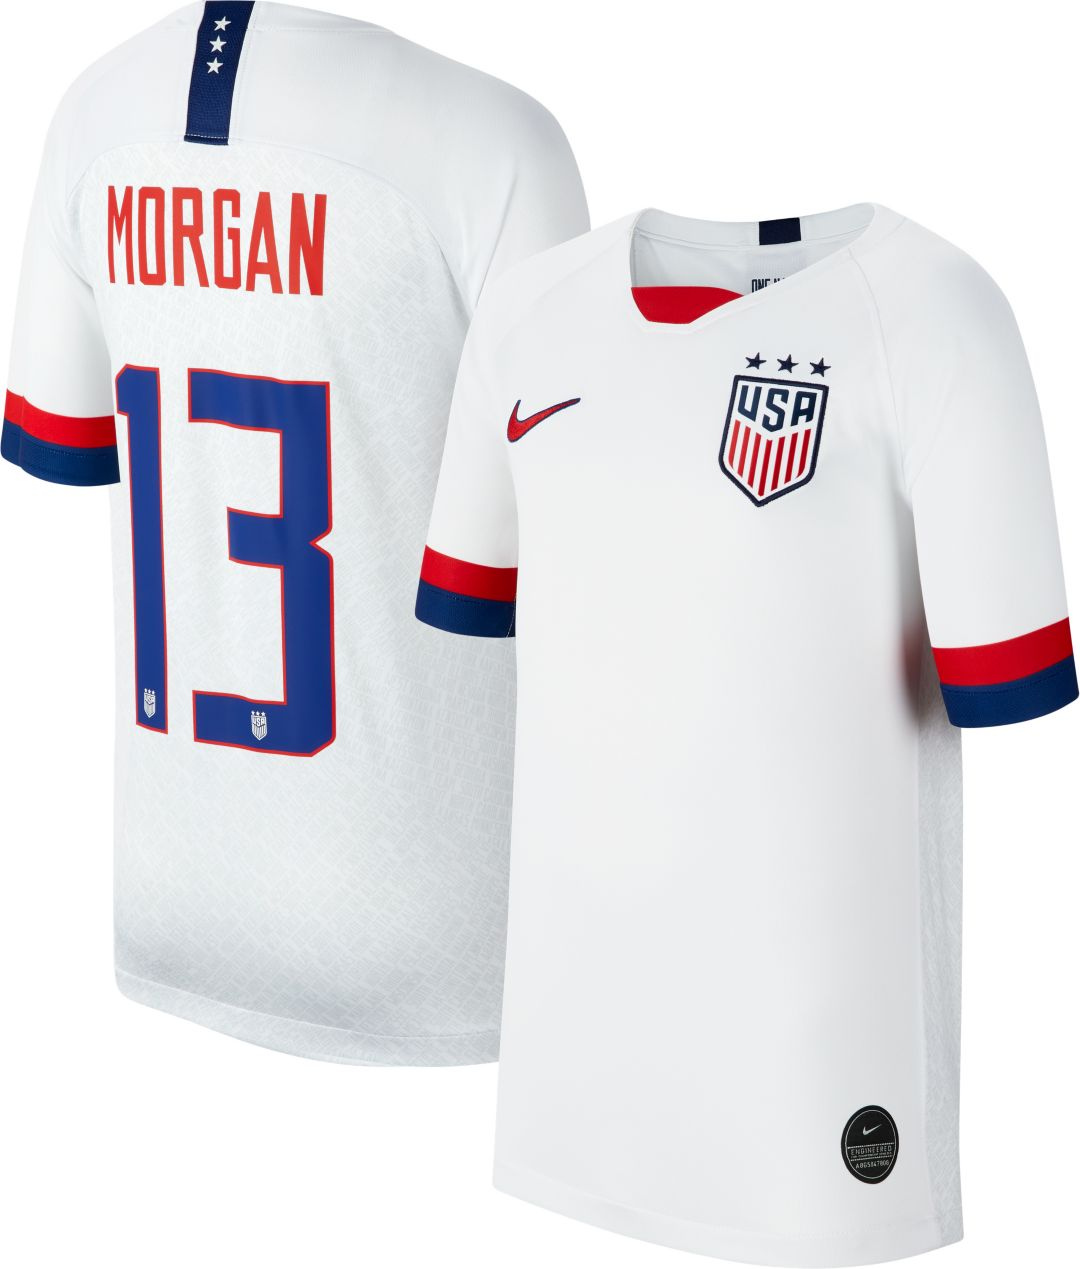 4d966c91e Nike Youth 2019 FIFA Women's World Cup USA Soccer Alex Morgan #13 ...